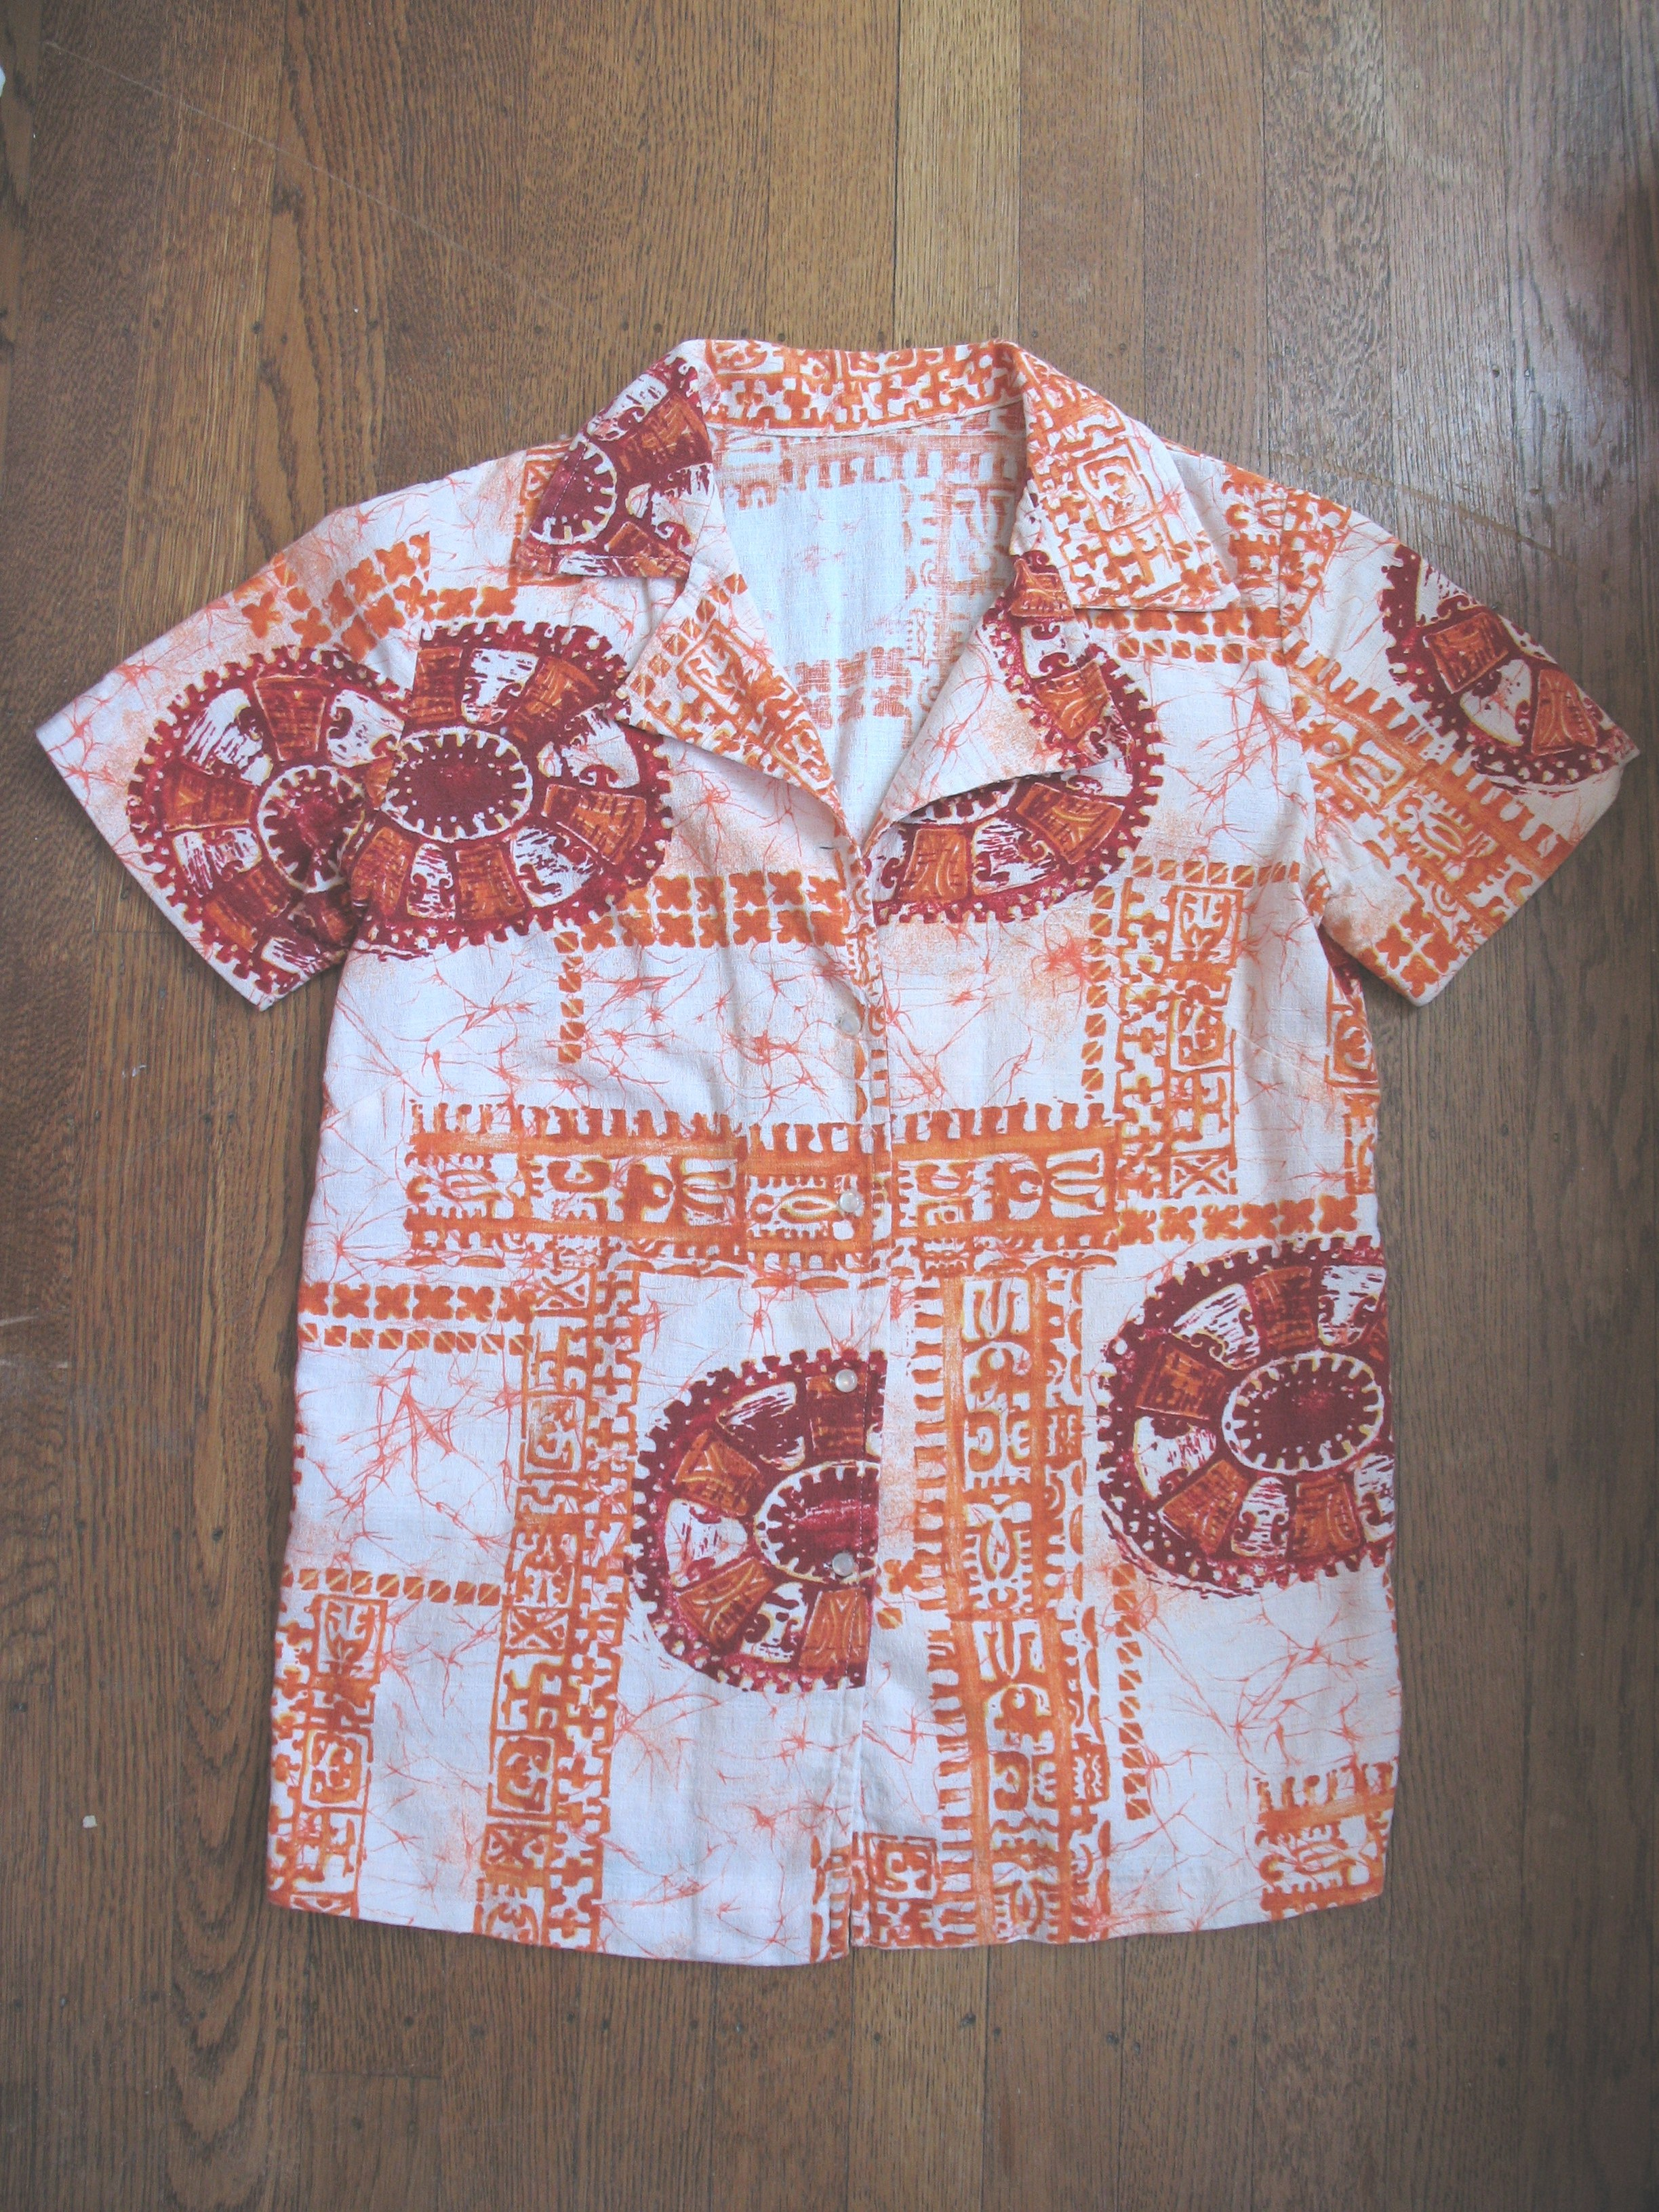 dc9d009b Aloha shirt - The complete information and online sale with free shipping.  Order and buy now for the lowest price in the best online store!